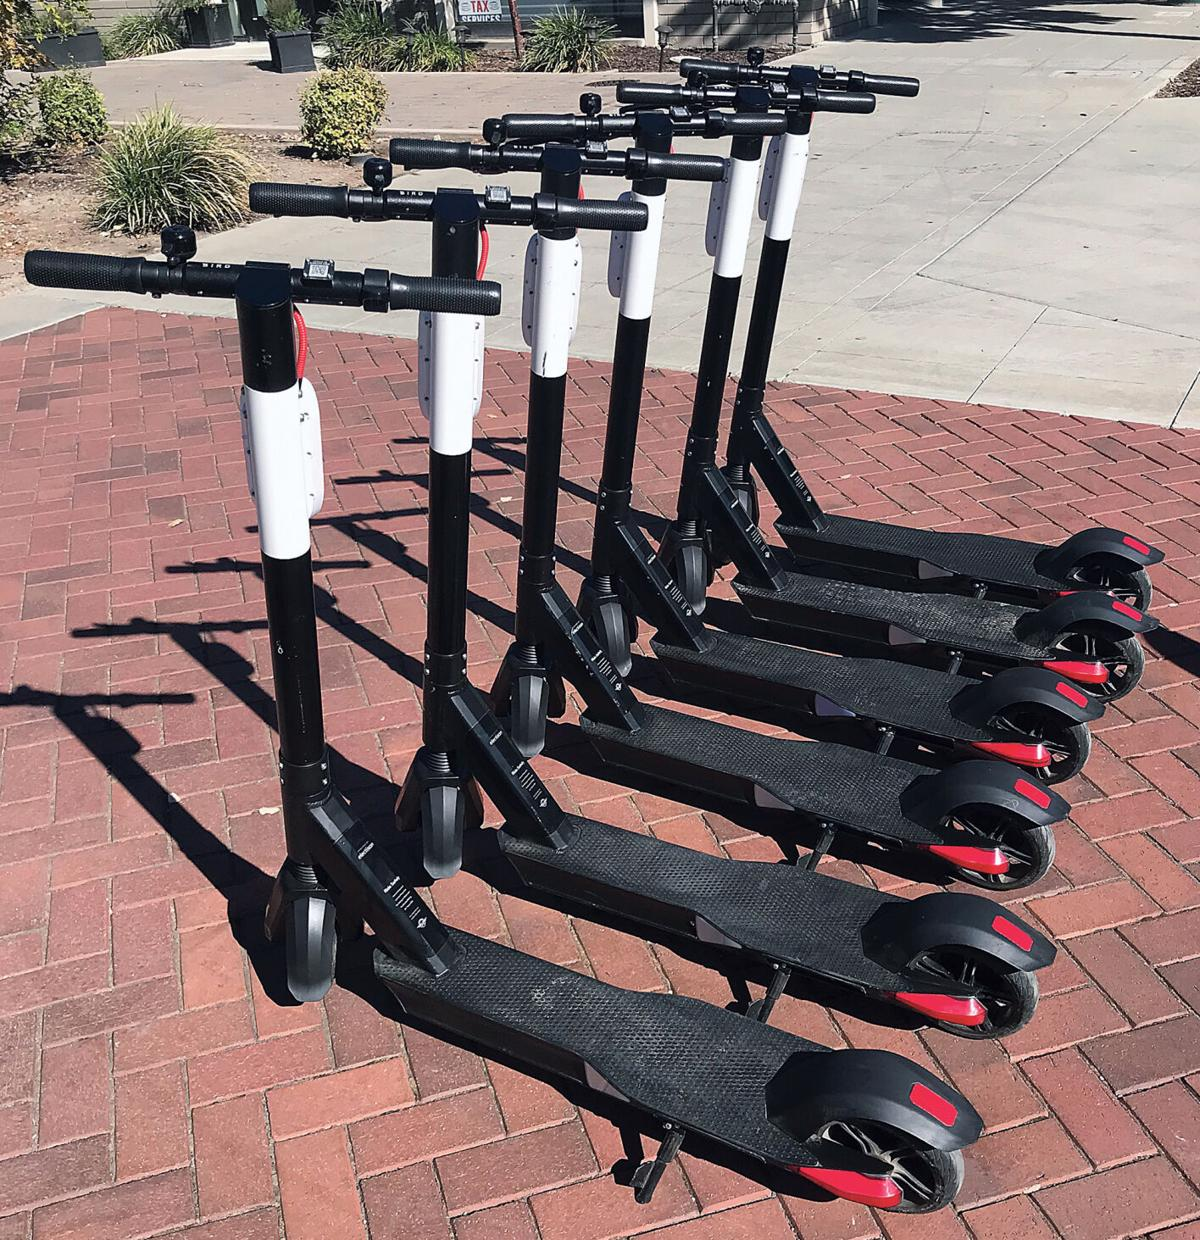 E-scooters arrive in Tracy